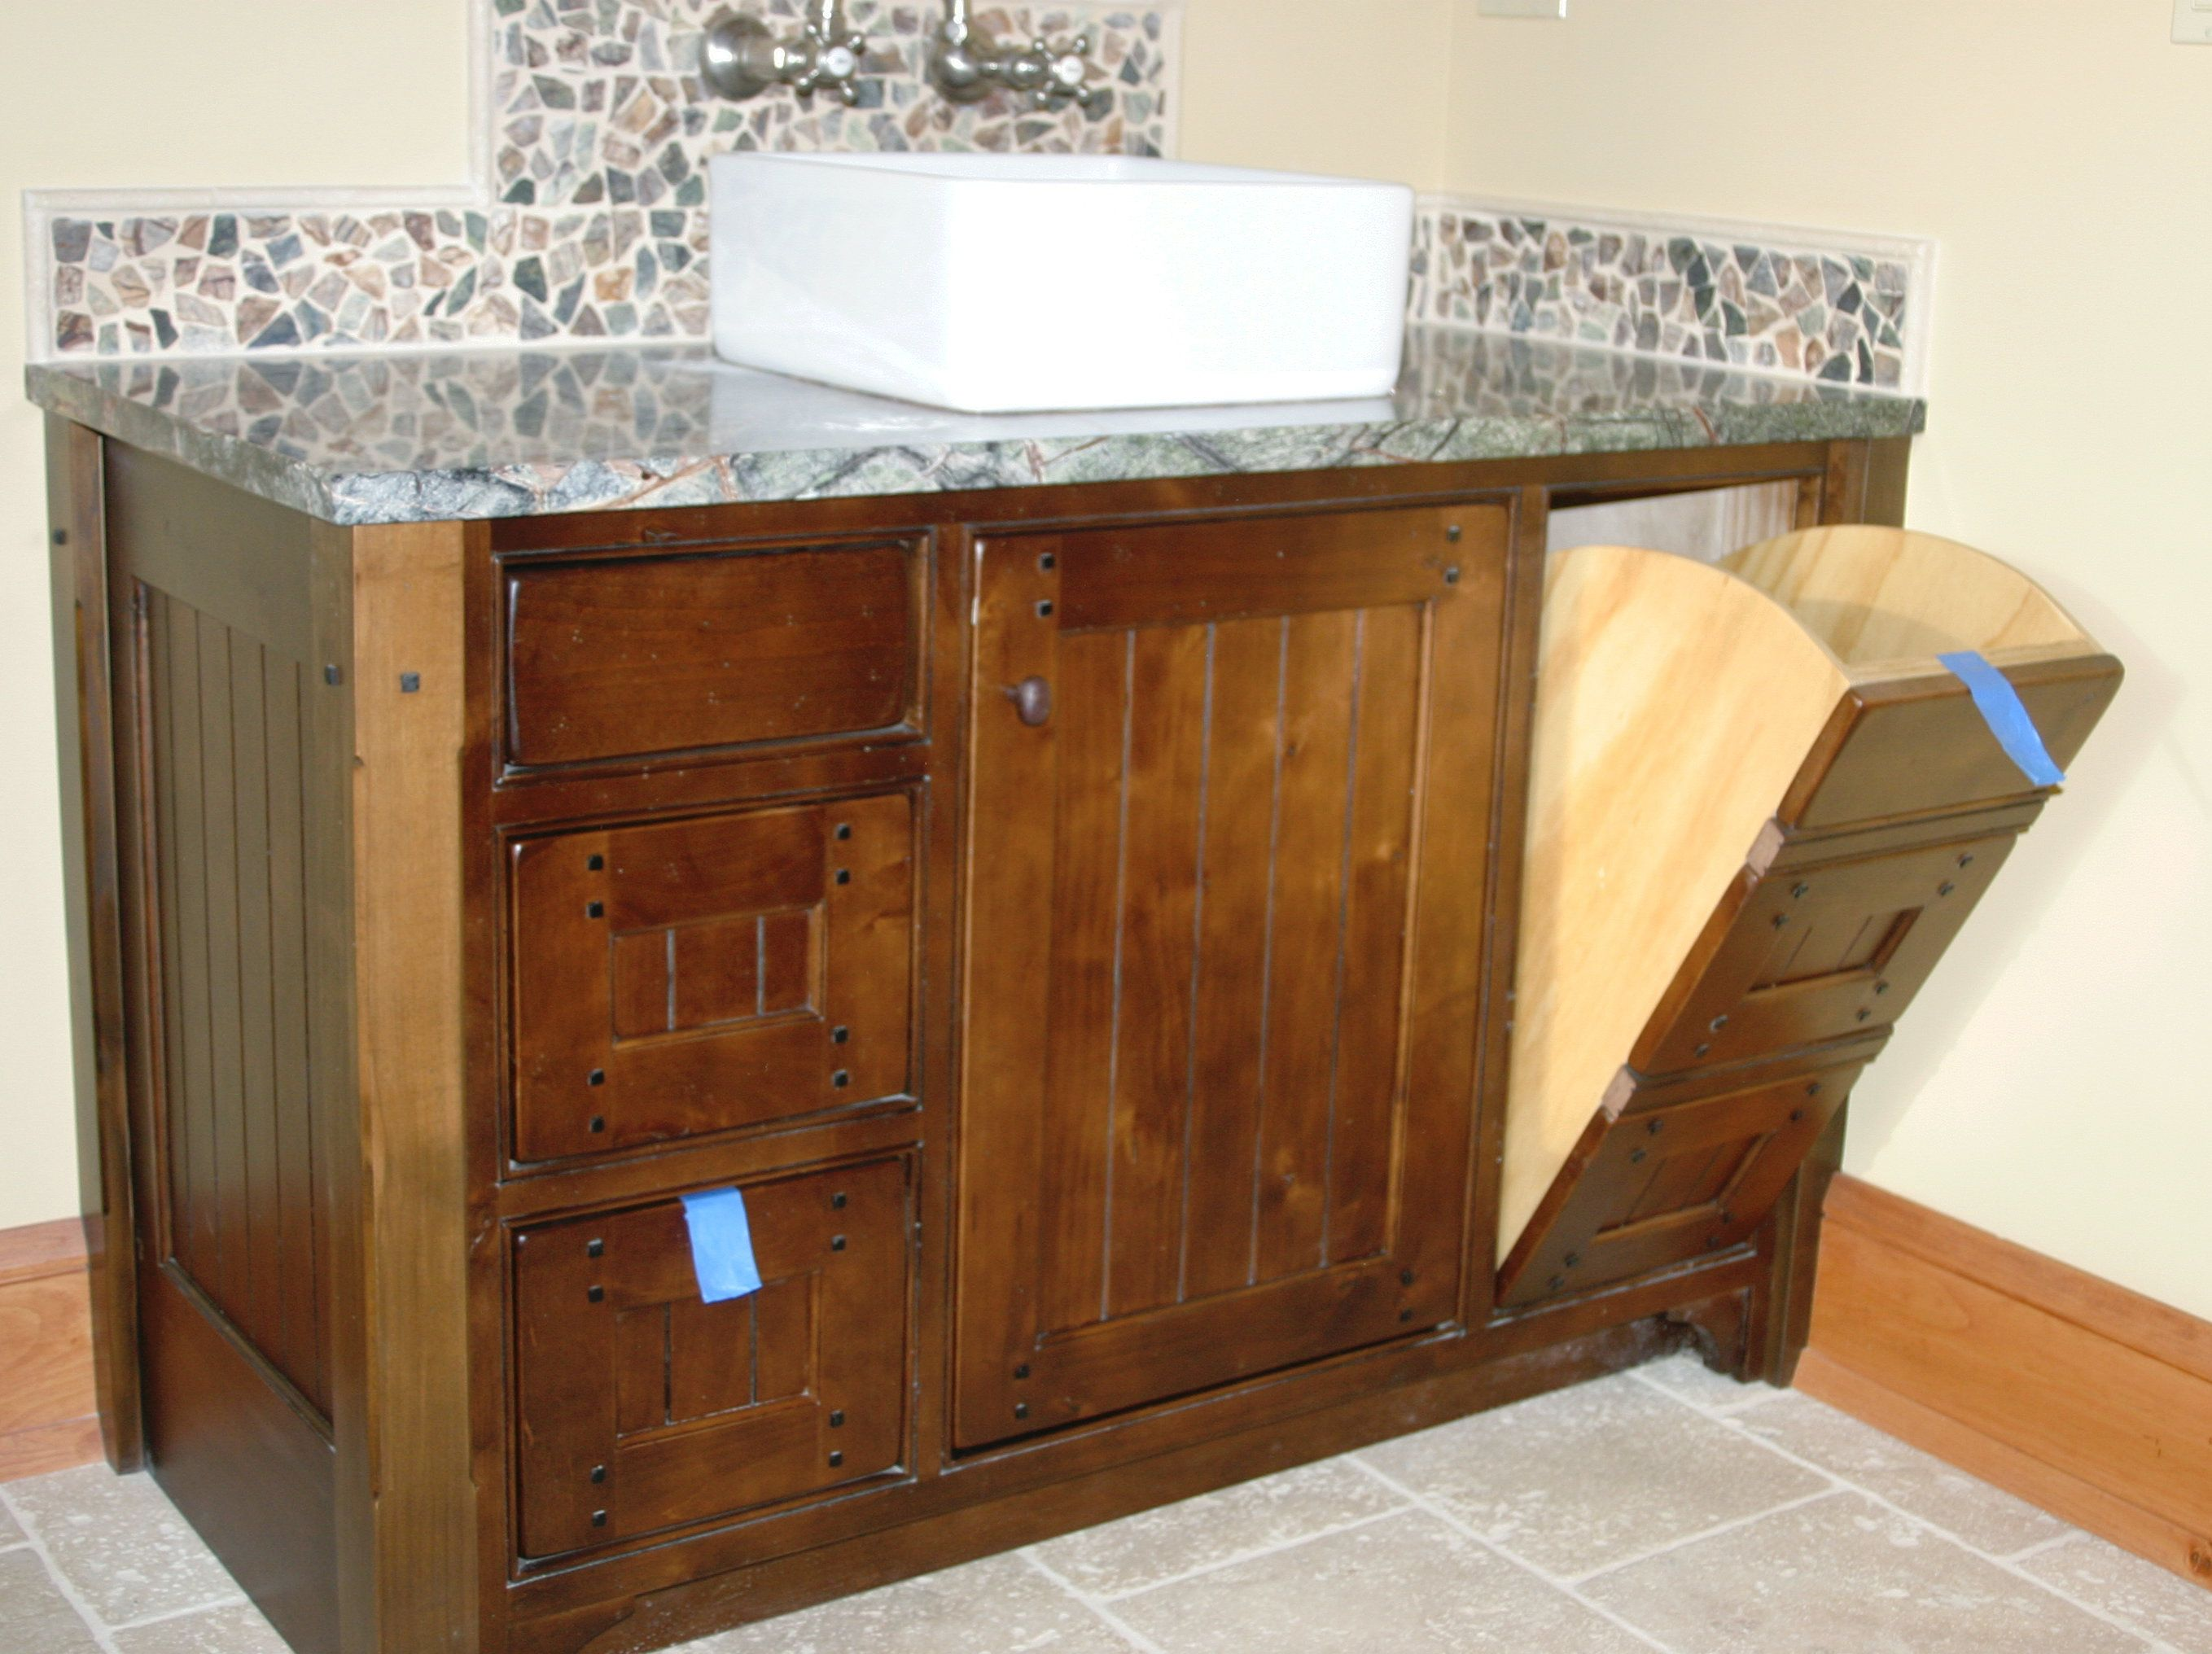 1000  images about Who Said Laundry  on Pinterest   Contemporary kitchen cabinets  Cabinets and Entryway. 1000  images about Who Said Laundry  on Pinterest   Contemporary